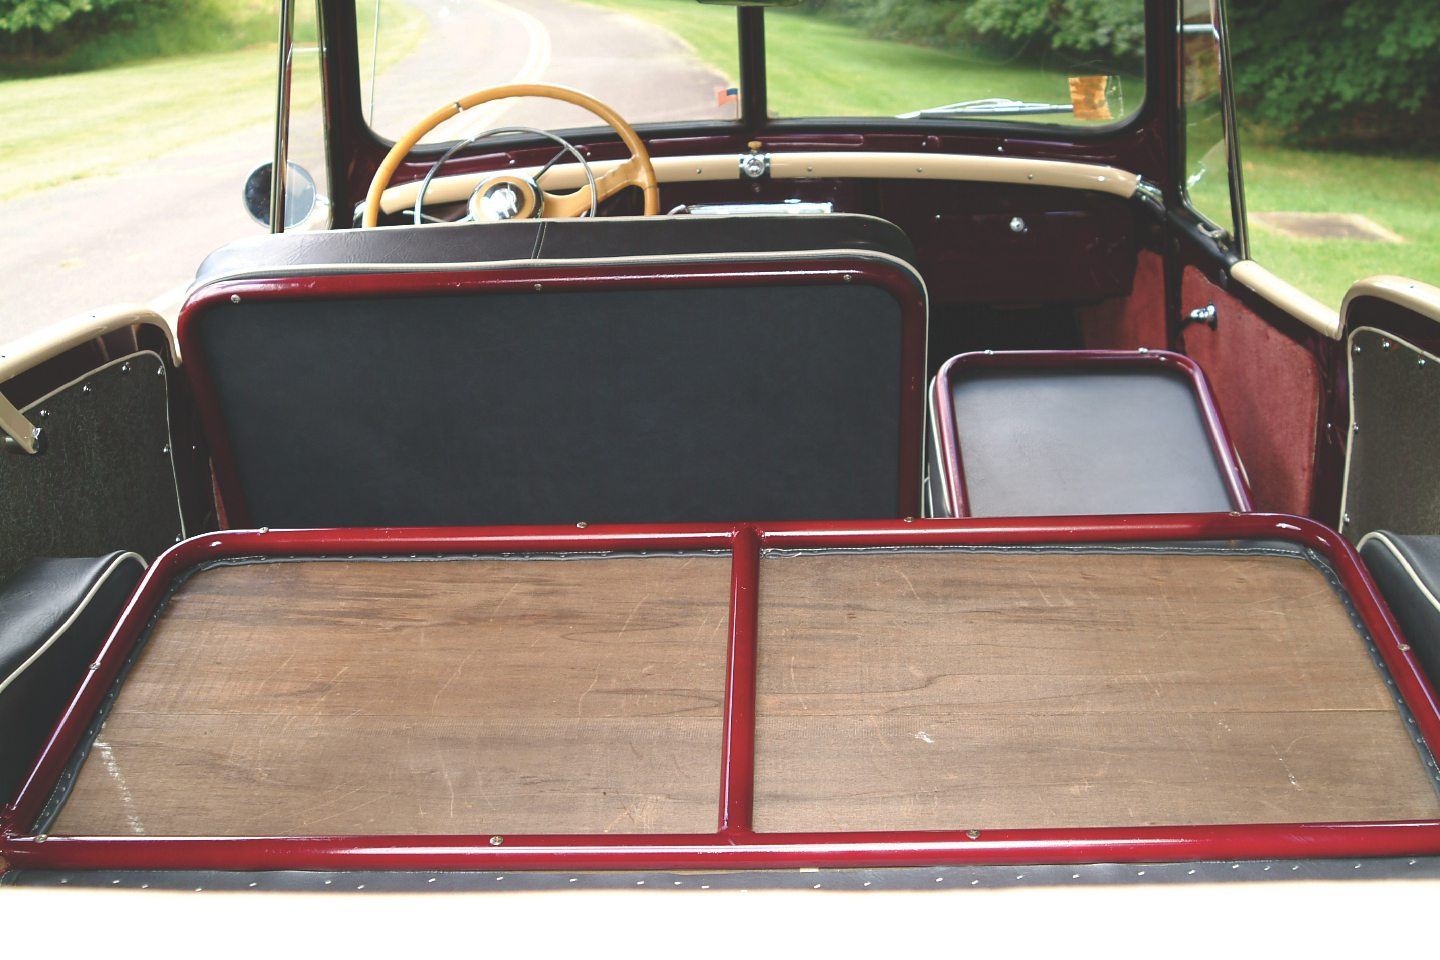 1949 Willys-Overland Jeepster Backseat Folded Down